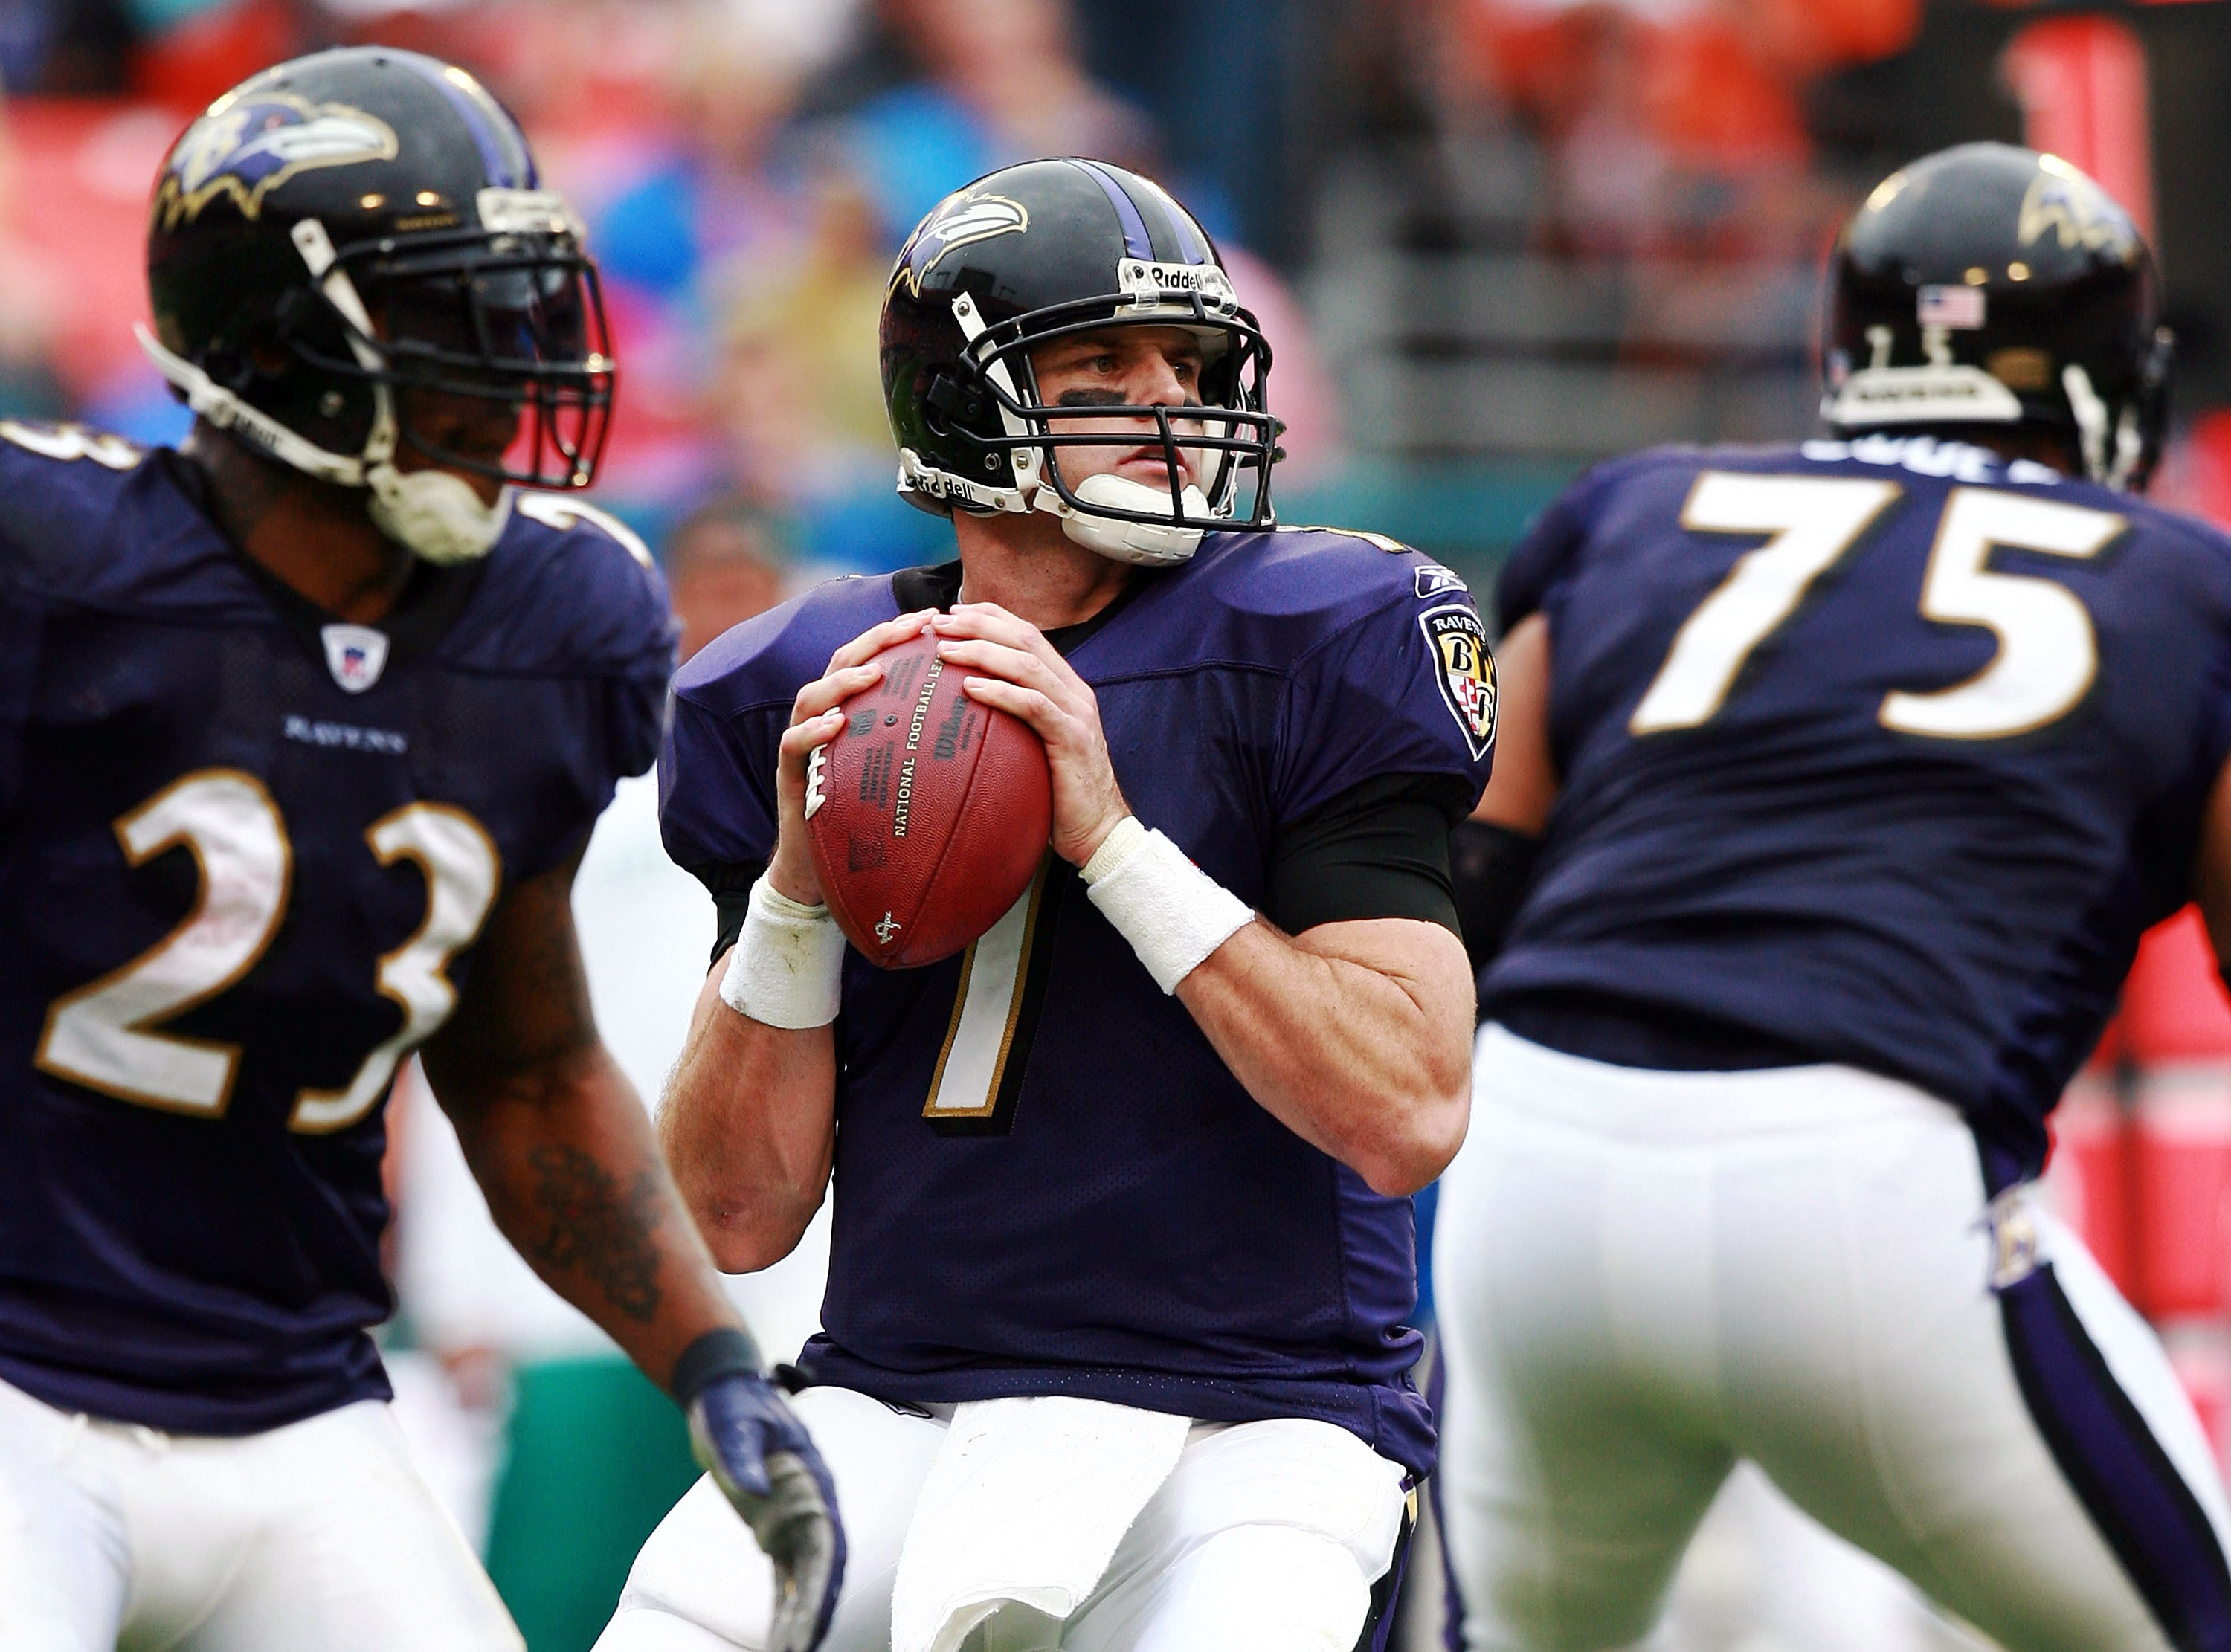 MIAMI - DECEMBER 16:  Quarterback Kyle Boller #7 of the Baltimore Ravens looks to pass against the Miami Dolphins at Dolphin Stadium on December 16, 2007 in Miami, Florida.  (Photo by Doug Benc/Getty Images)